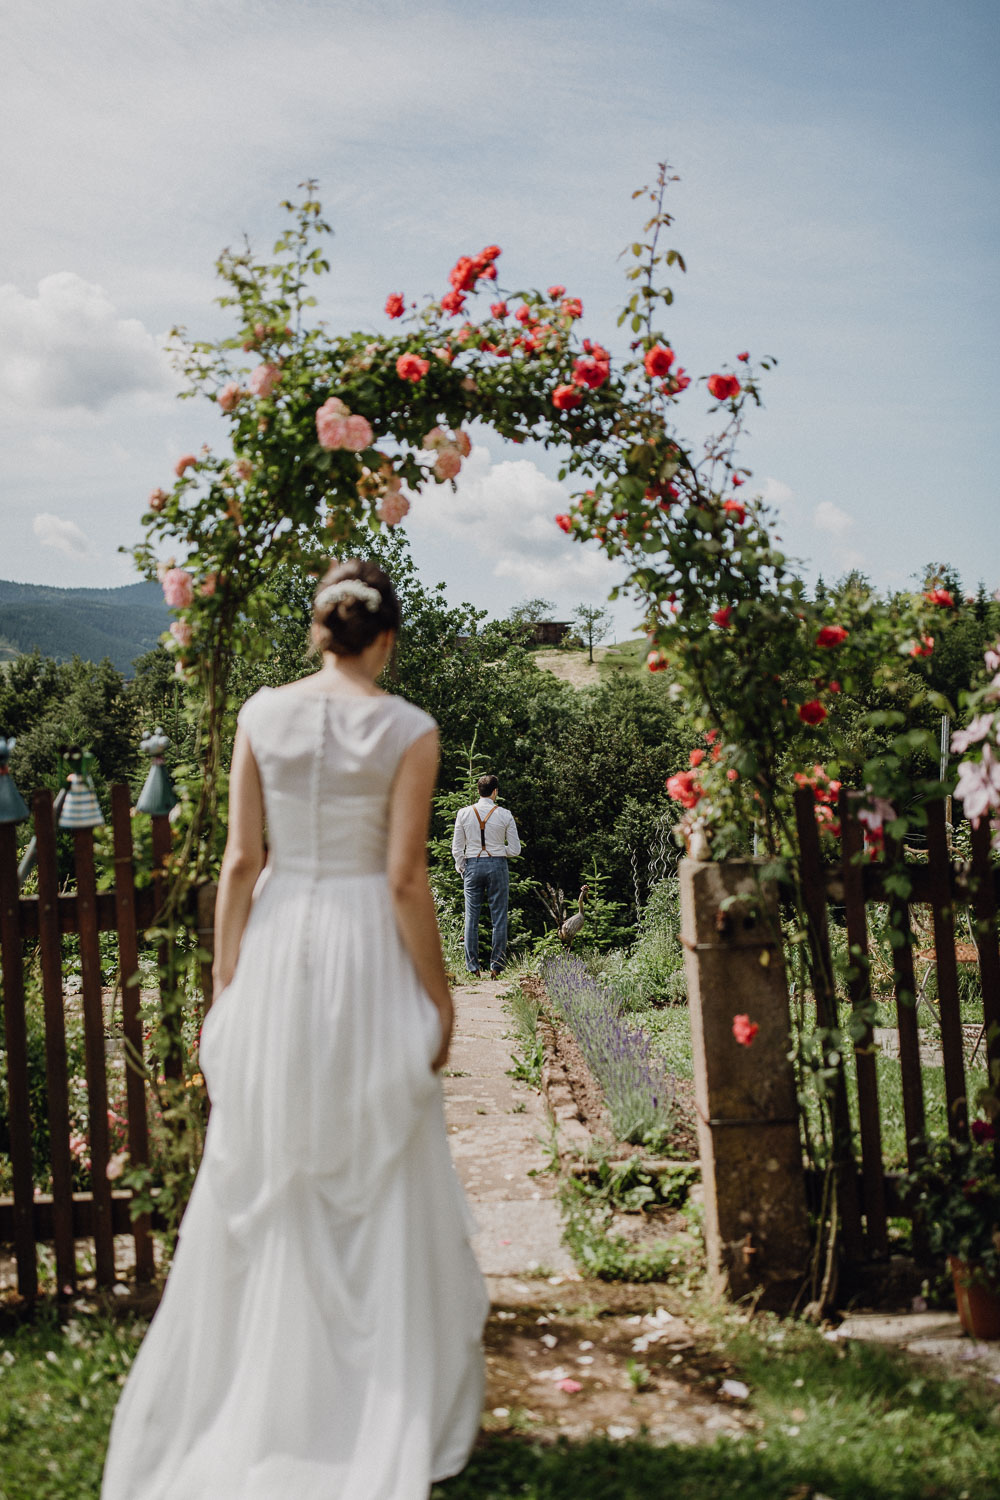 raissa simon photography destination wedding munich black forest barn 017 - Melanie + Sebastian